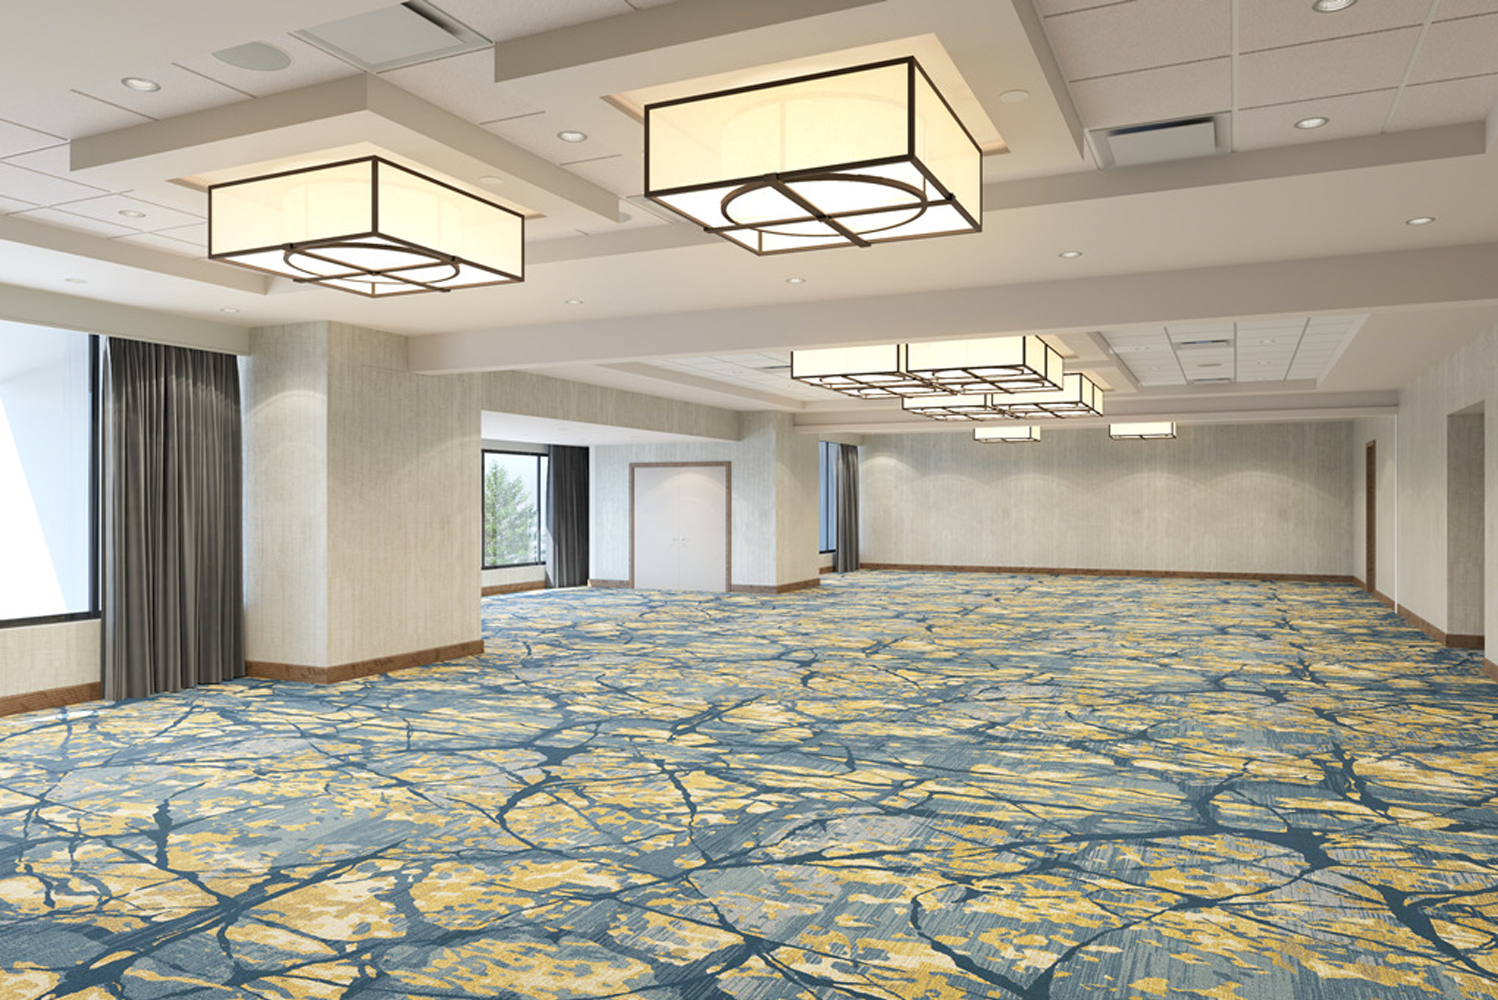 Each room in the indoor meeting space will have its own individual style with nods to the Perimeter Center.